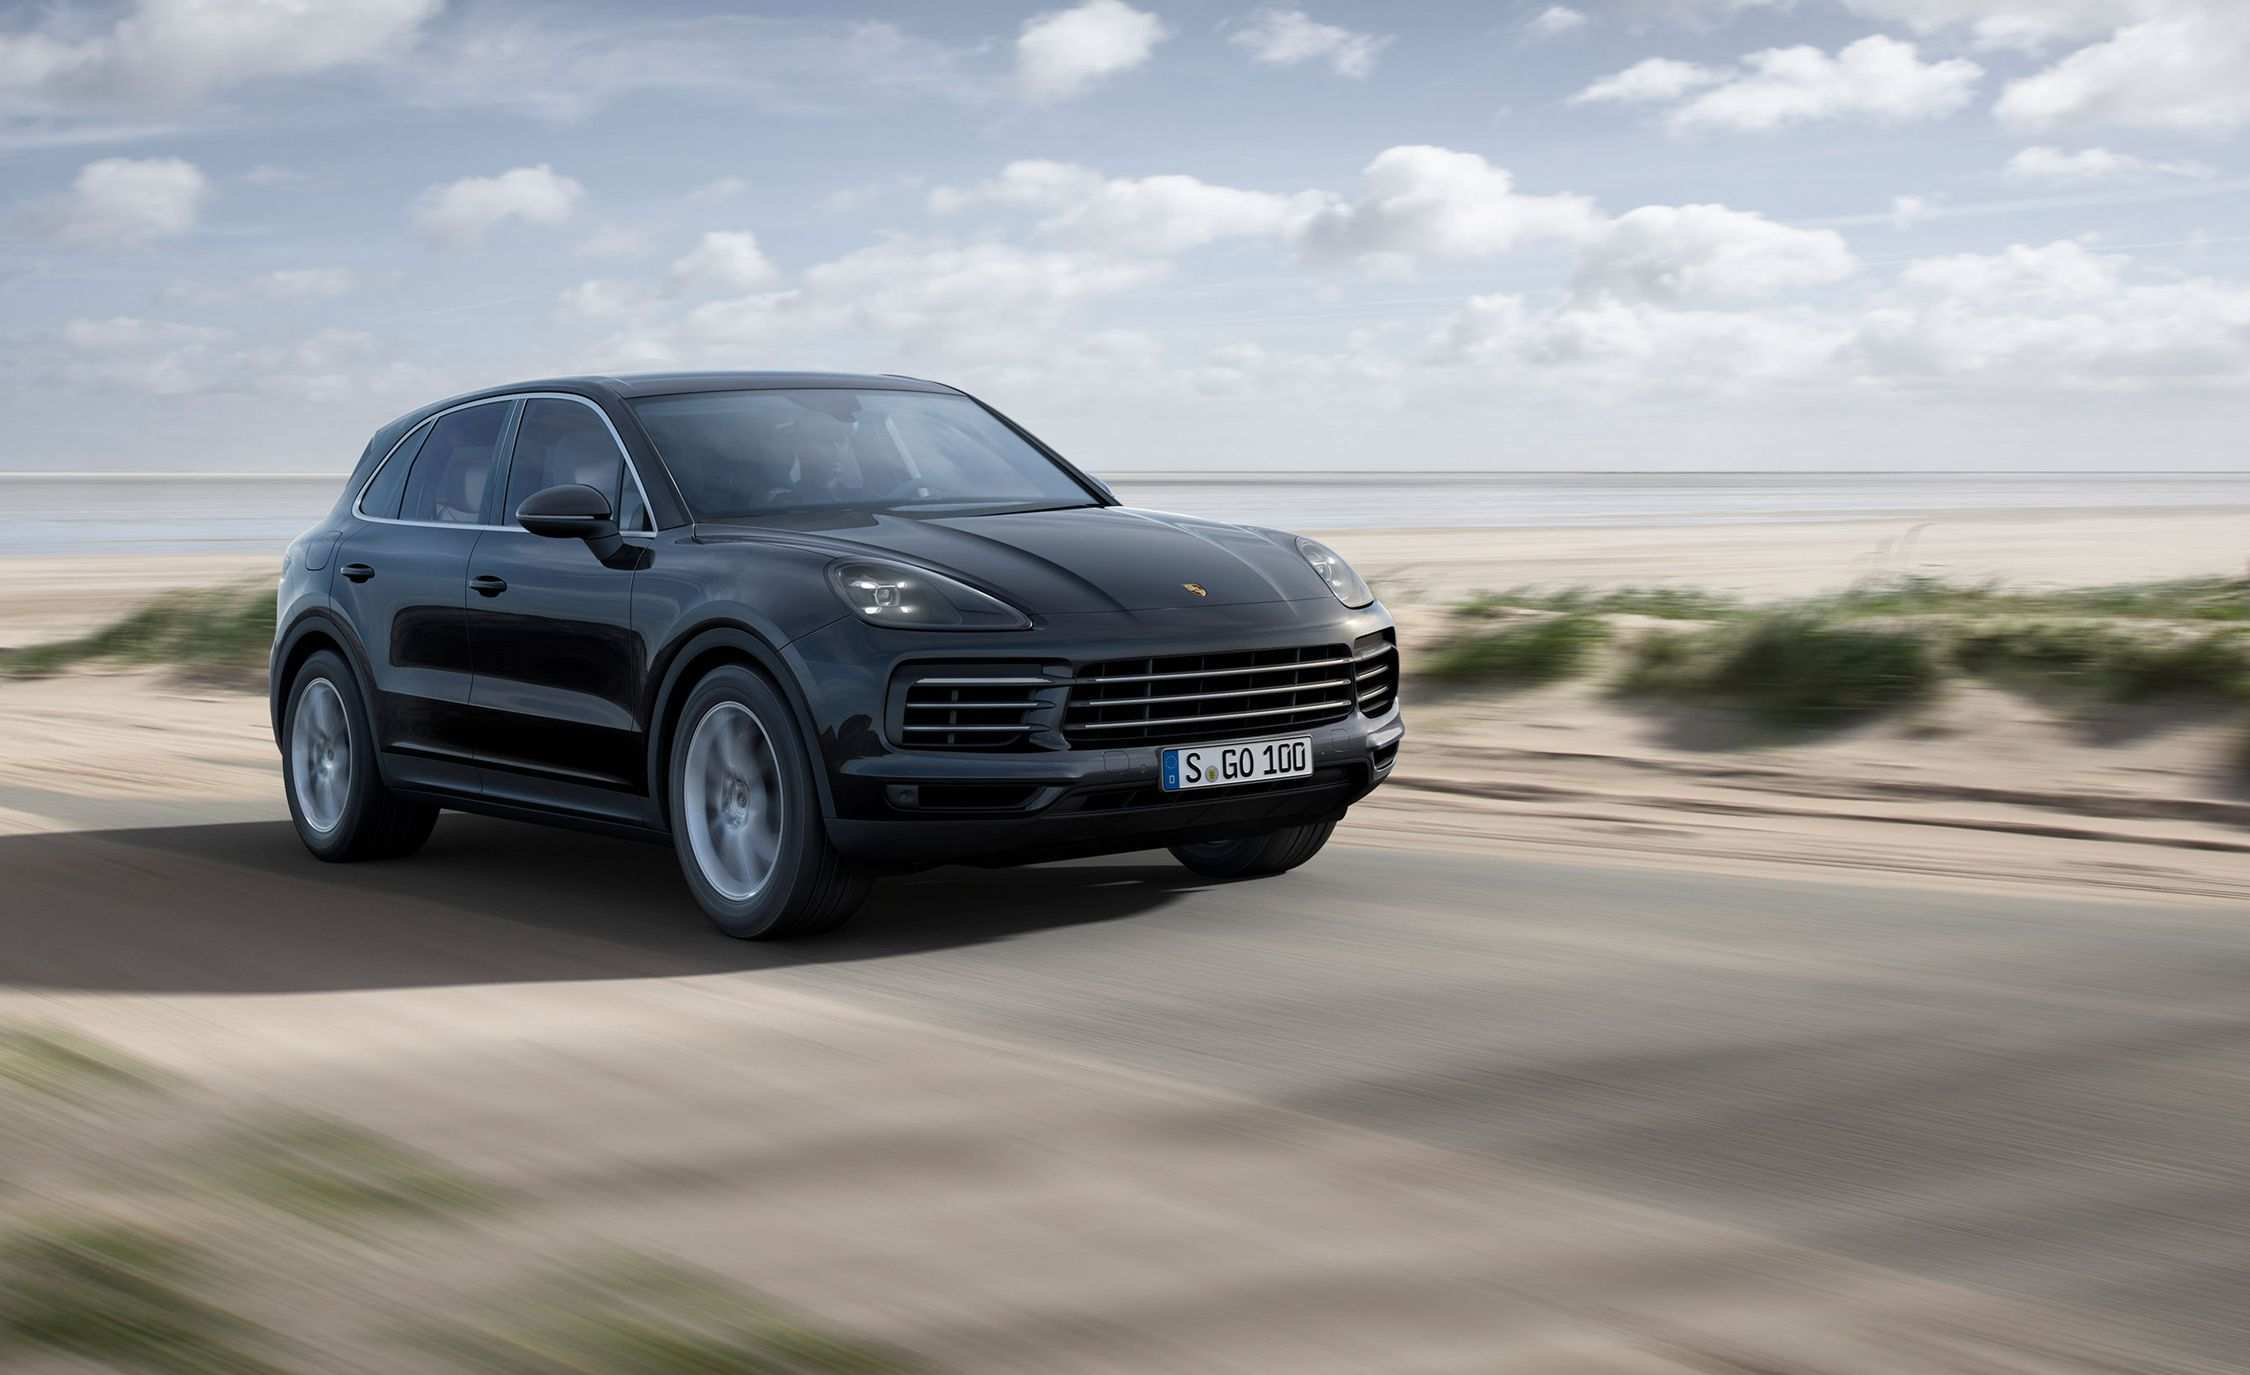 42 New 2019 Porsche Cayenne Release Date Release by 2019 Porsche Cayenne Release Date